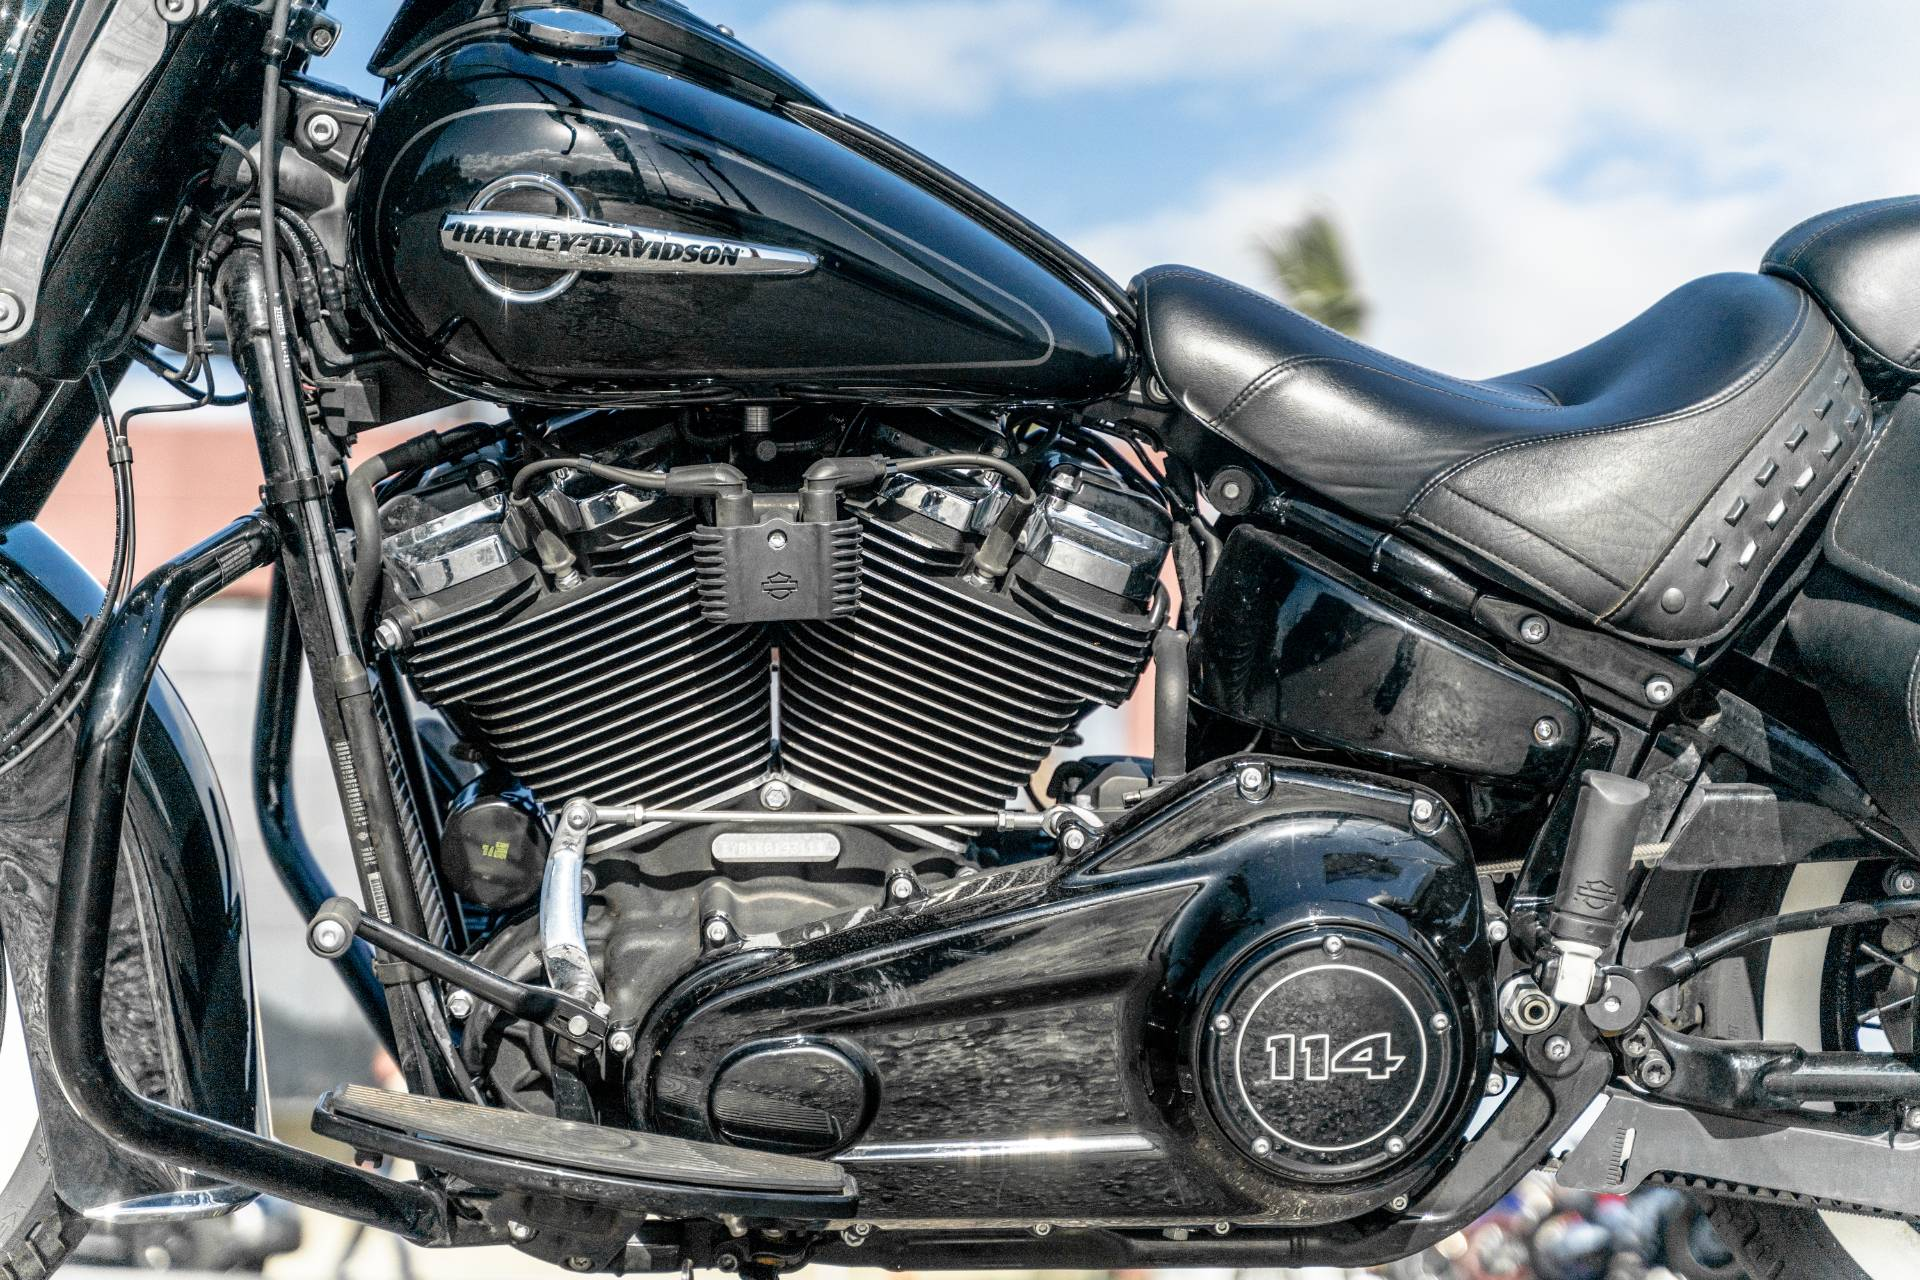 2019 Harley-Davidson Heritage Classic 114 in Houston, Texas - Photo 25